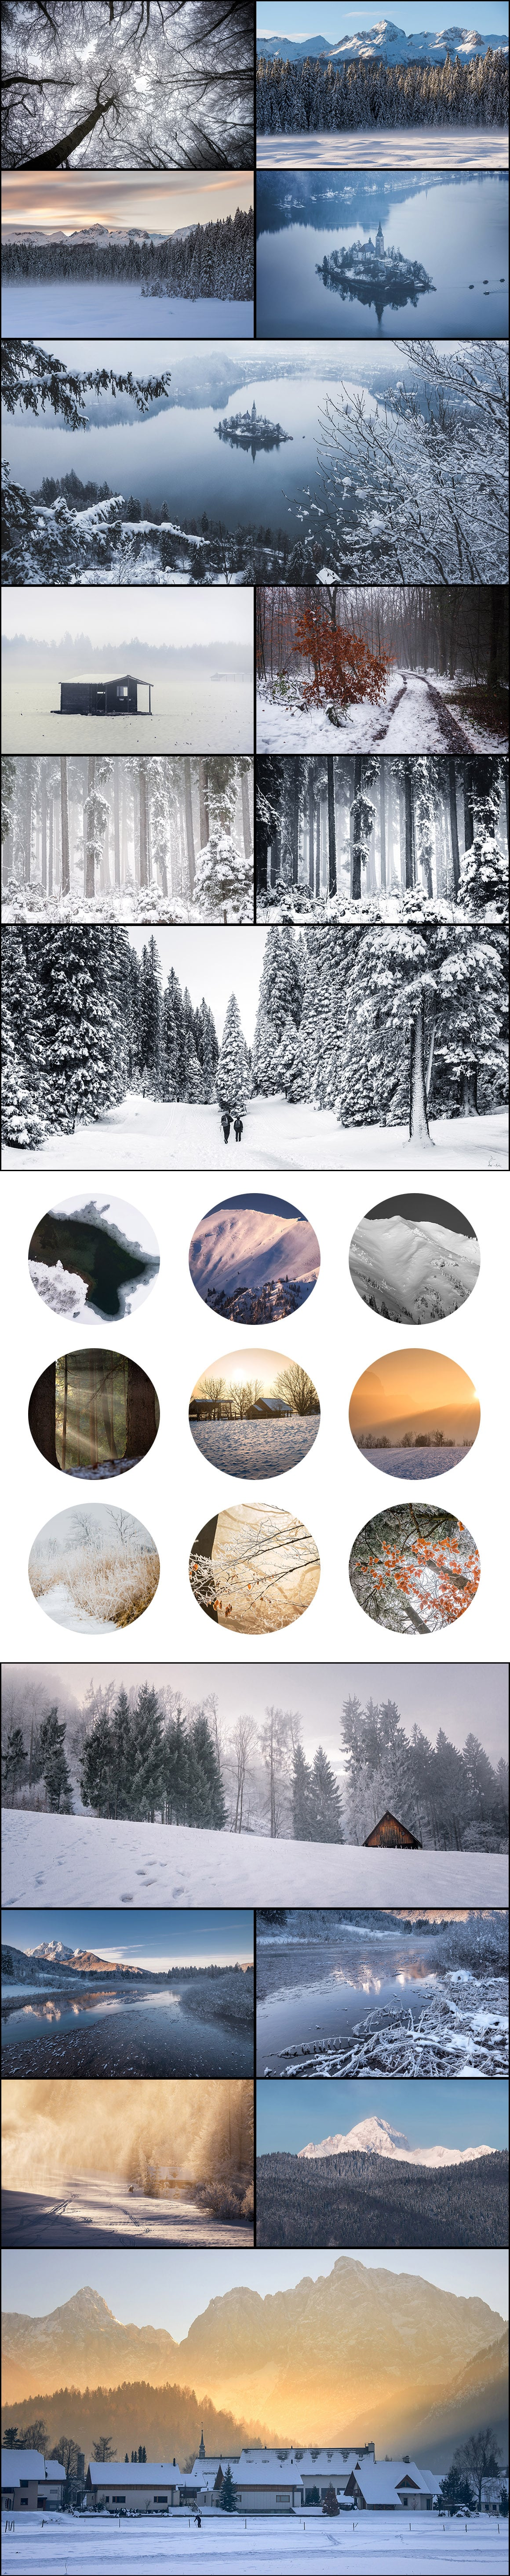 500+ Stock Images. Ultimate Photo Bundle  – $59 - PREVIEW winter1